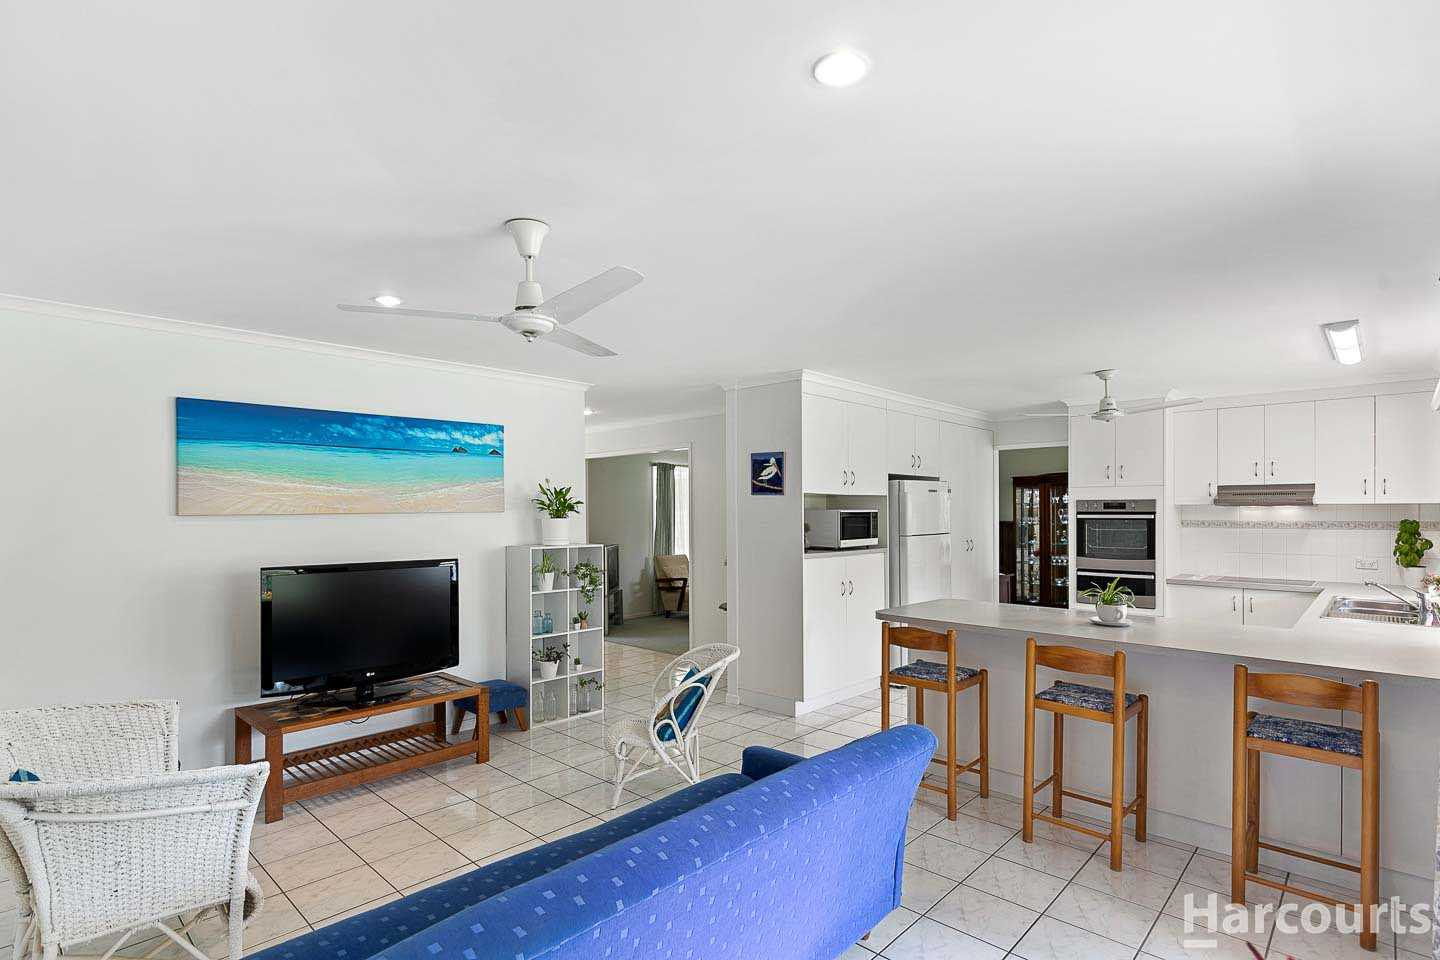 Spacious Family Home on 3642m2 - Room for all the toys!